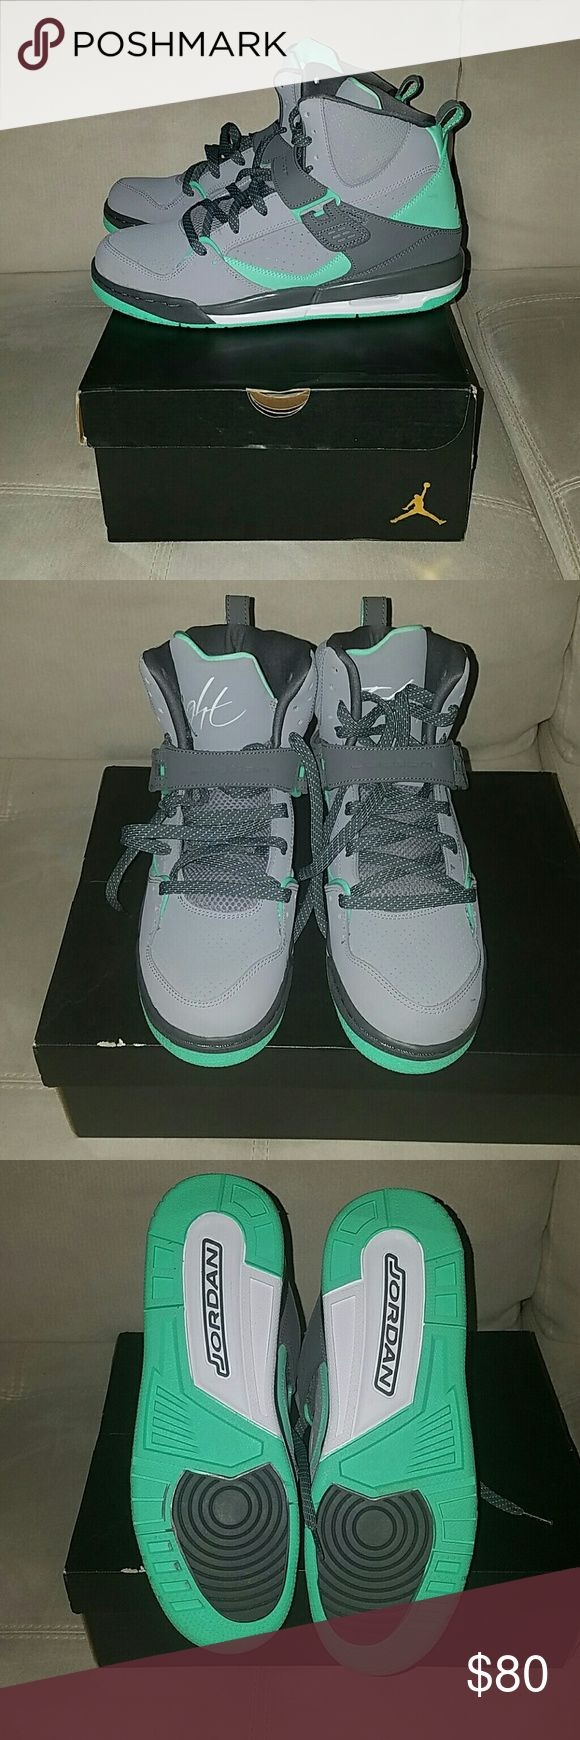 🎒🎒BACK TO SCHOOL SALE 🎒🎒 NWT kids Grey and teal Jordan flight 45 high ip gg size 9.5. Could be for a boy or girl. Brand new Jordan Shoes Sneakers